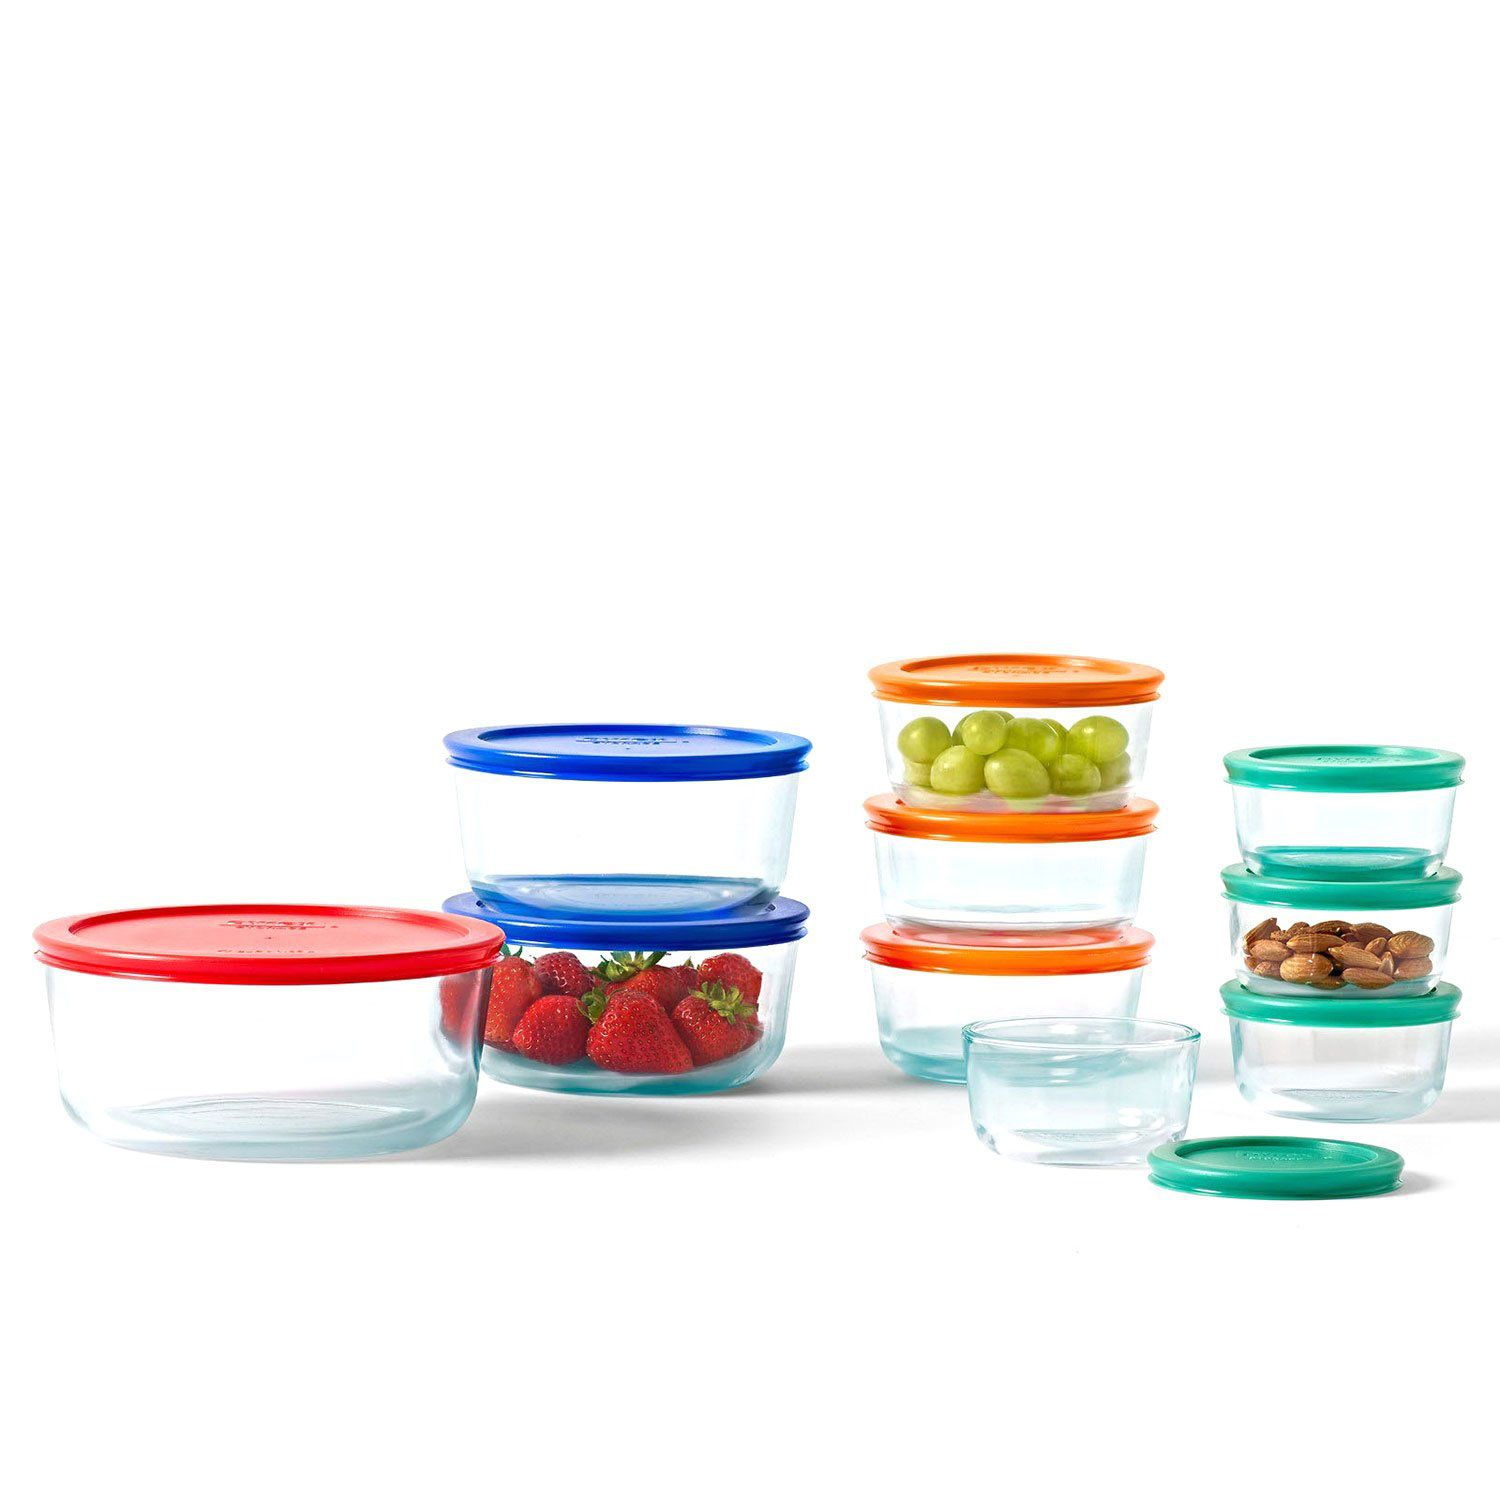 pyrex glass kitchen food storage set lunch box container. Black Bedroom Furniture Sets. Home Design Ideas